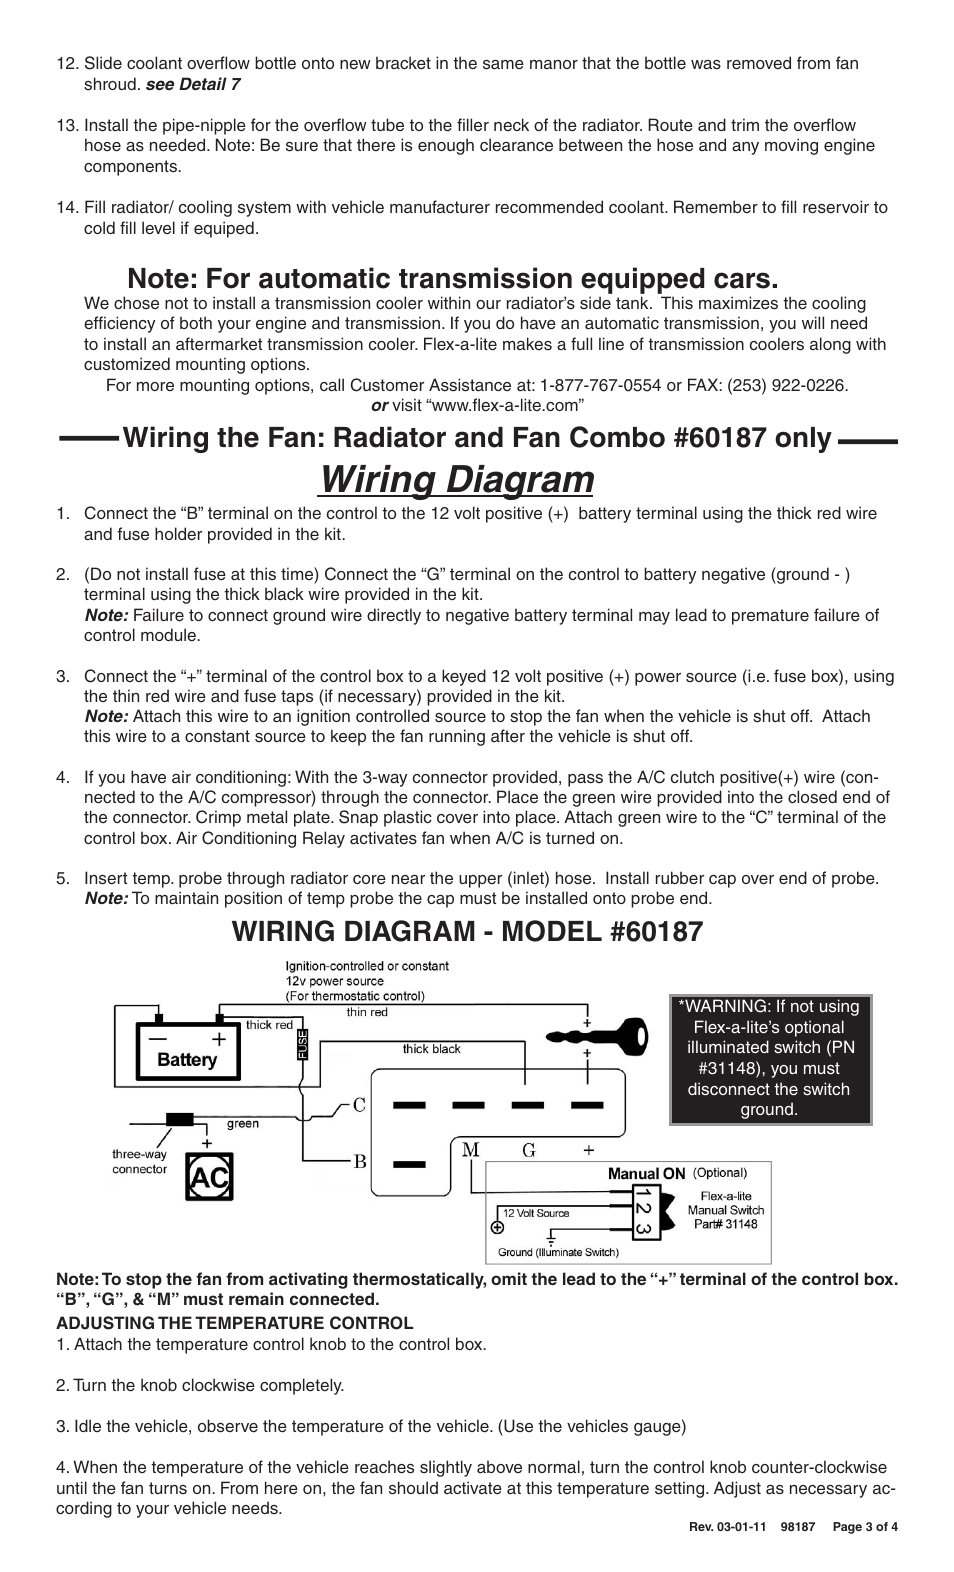 Wiring Diagram Flex A Lite 60087 Wrangler Radiator Kit Fits 1987 Jeep Engine Coolant Overflow Hose 2006 Wranglers User Manual Page 3 4